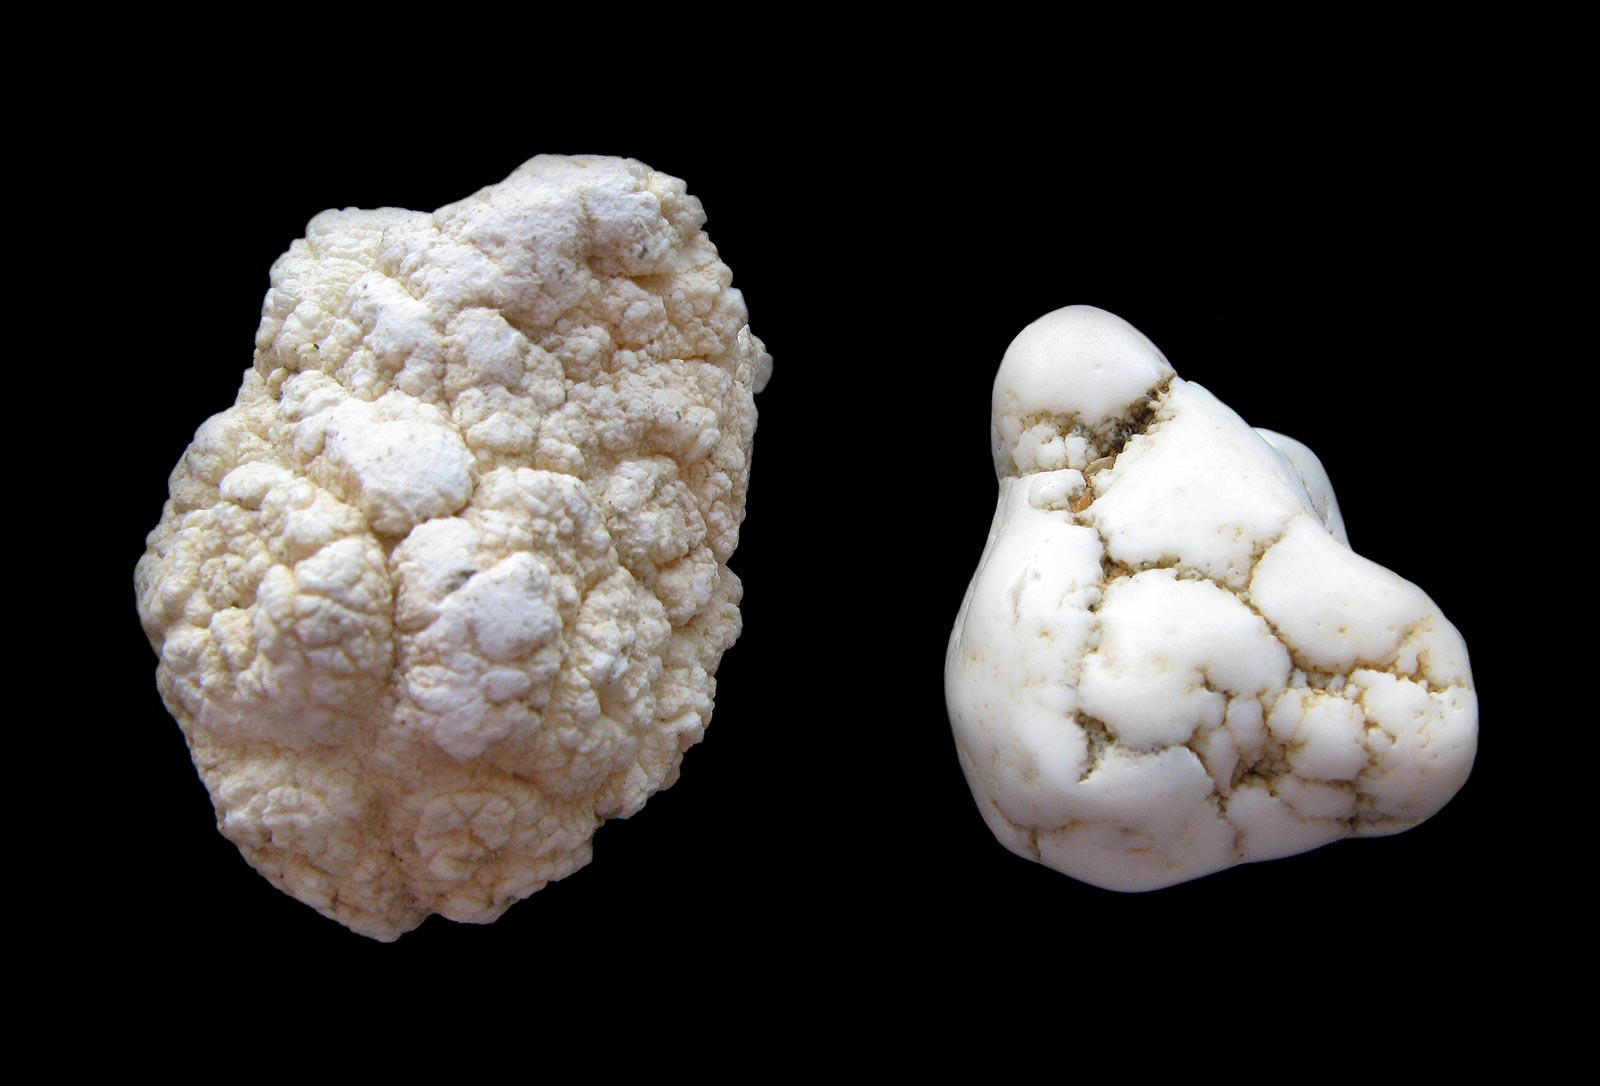 Rough and trommel processed magnesite nodules